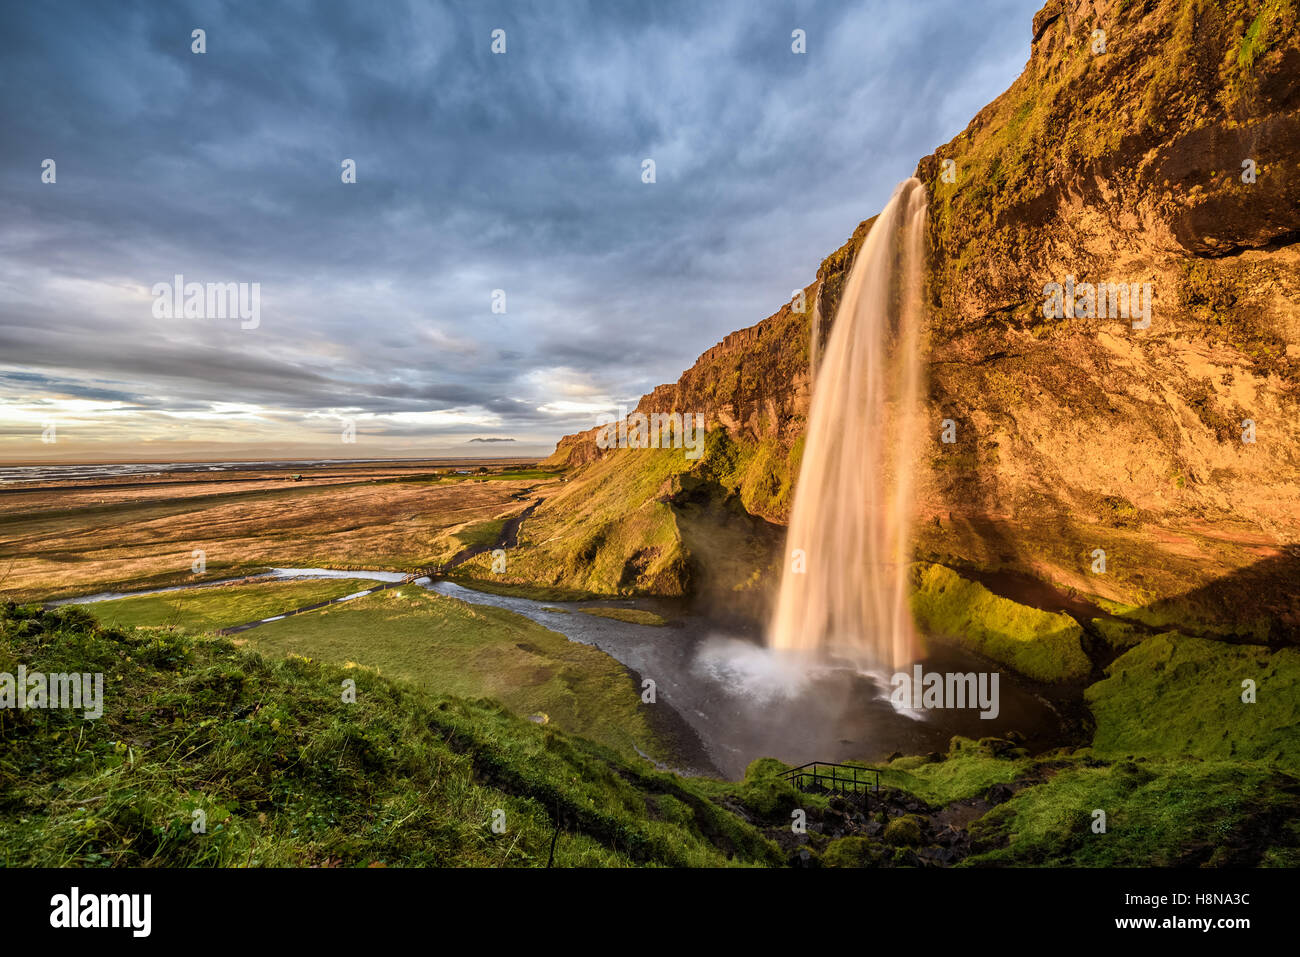 Seljalandsfoss Waterfall in Iceland at sunset. Hdr processed. - Stock Image